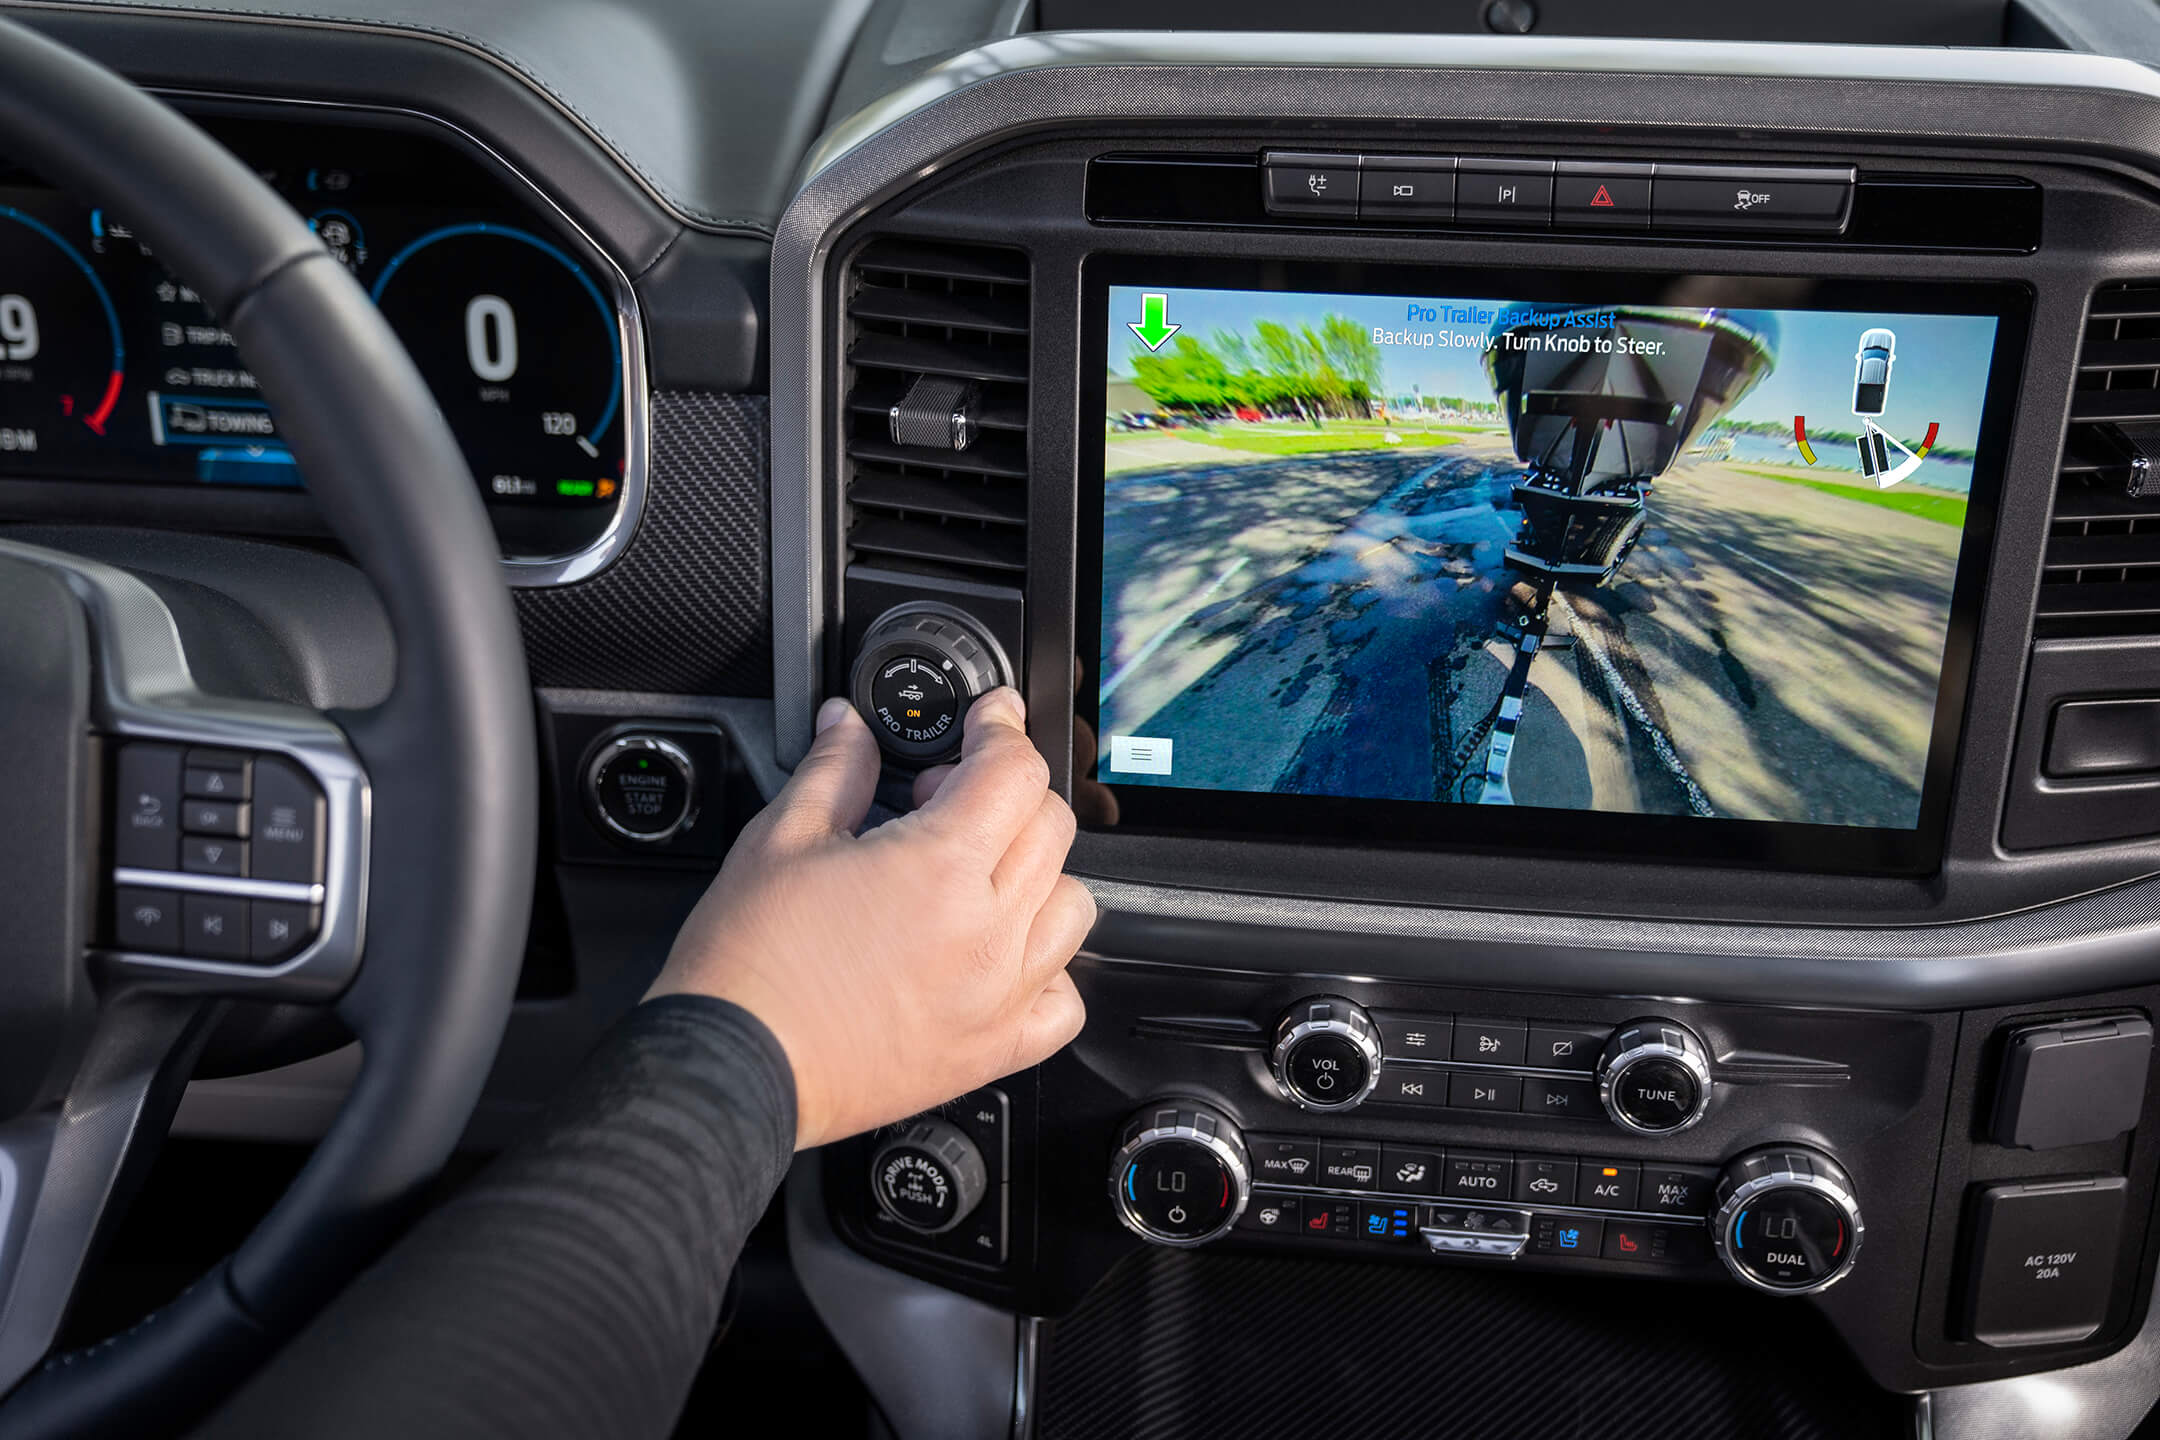 ford f150 backup assist view